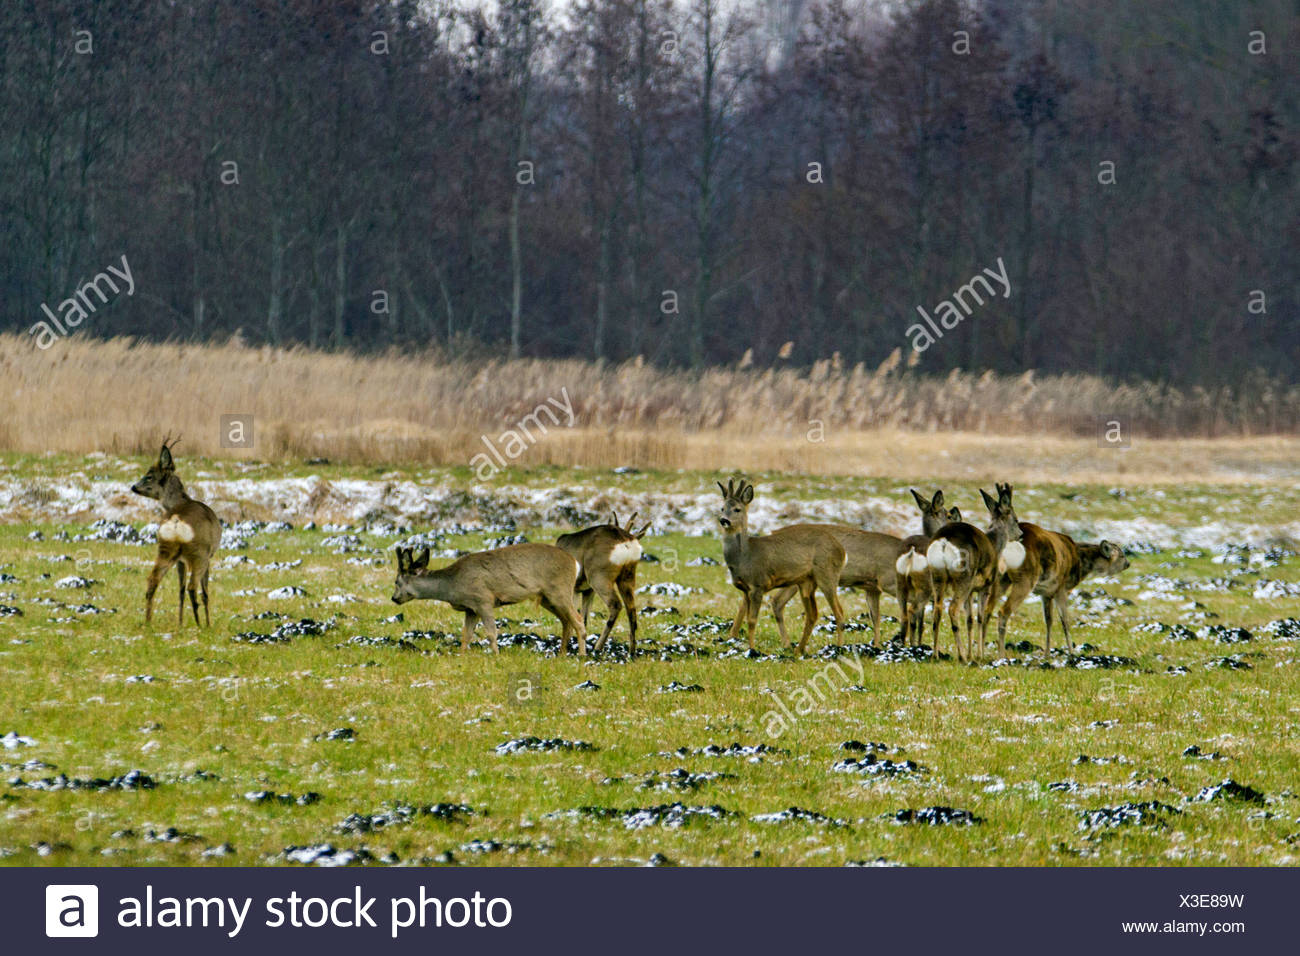 roe deer (Capreolus capreolus), group on meadow in winter, bucks with and without velvet, Germany, Bavaria - Stock Image